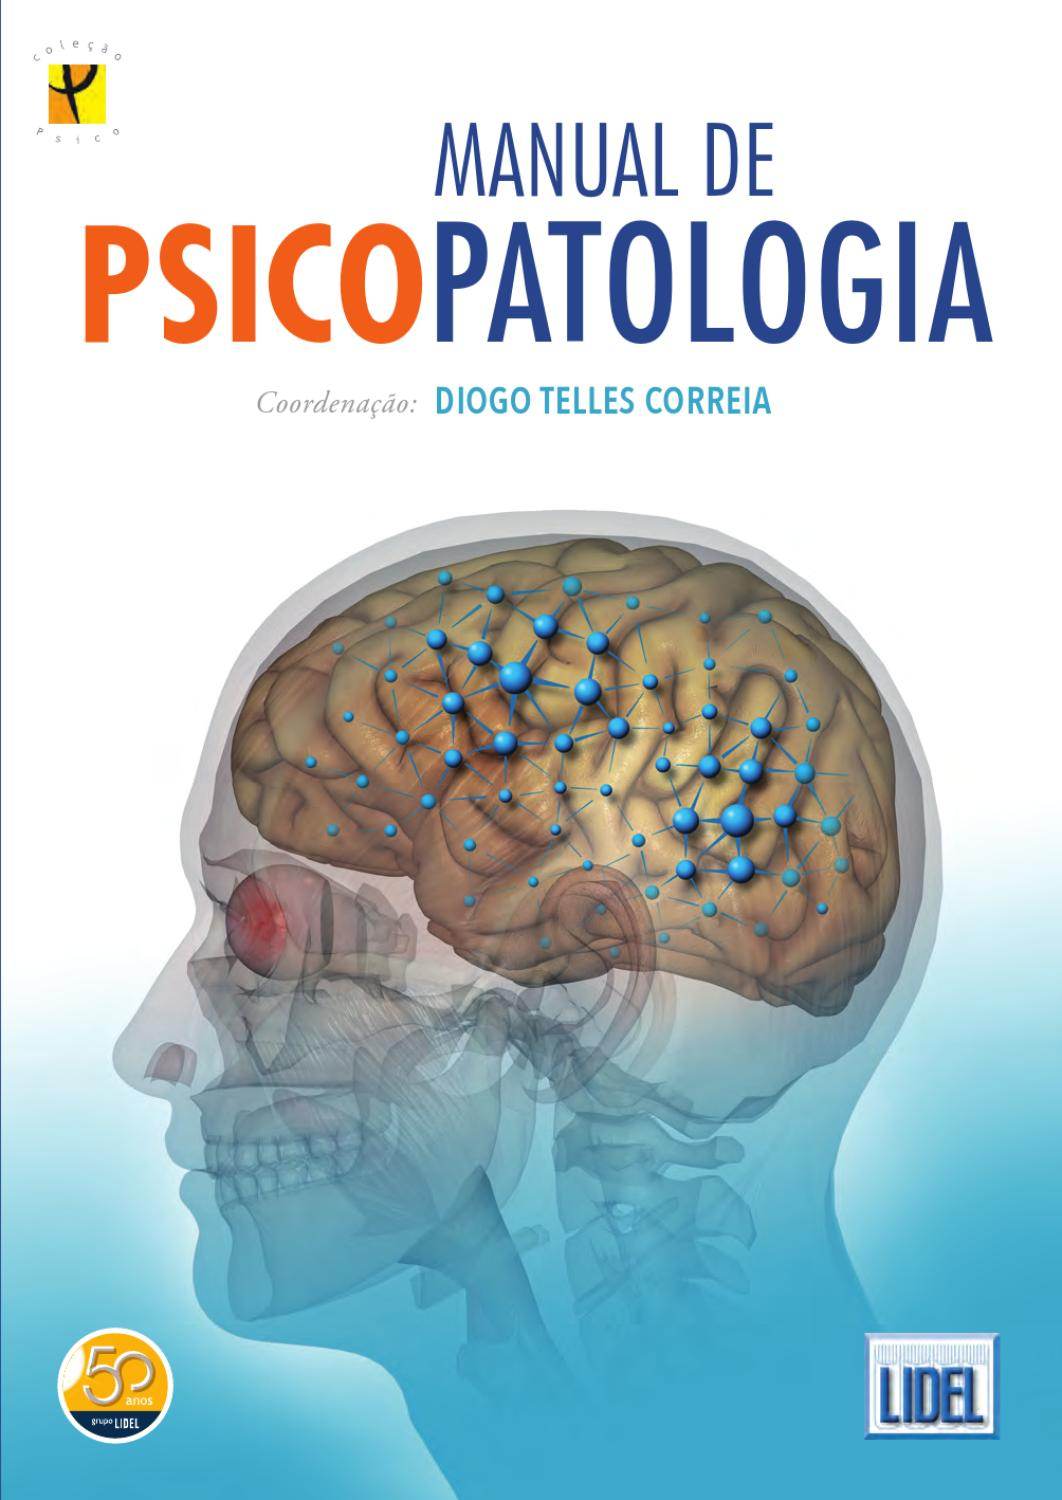 Manual de psicopatologia by grupo lidel issuu for Manual de acuicultura pdf